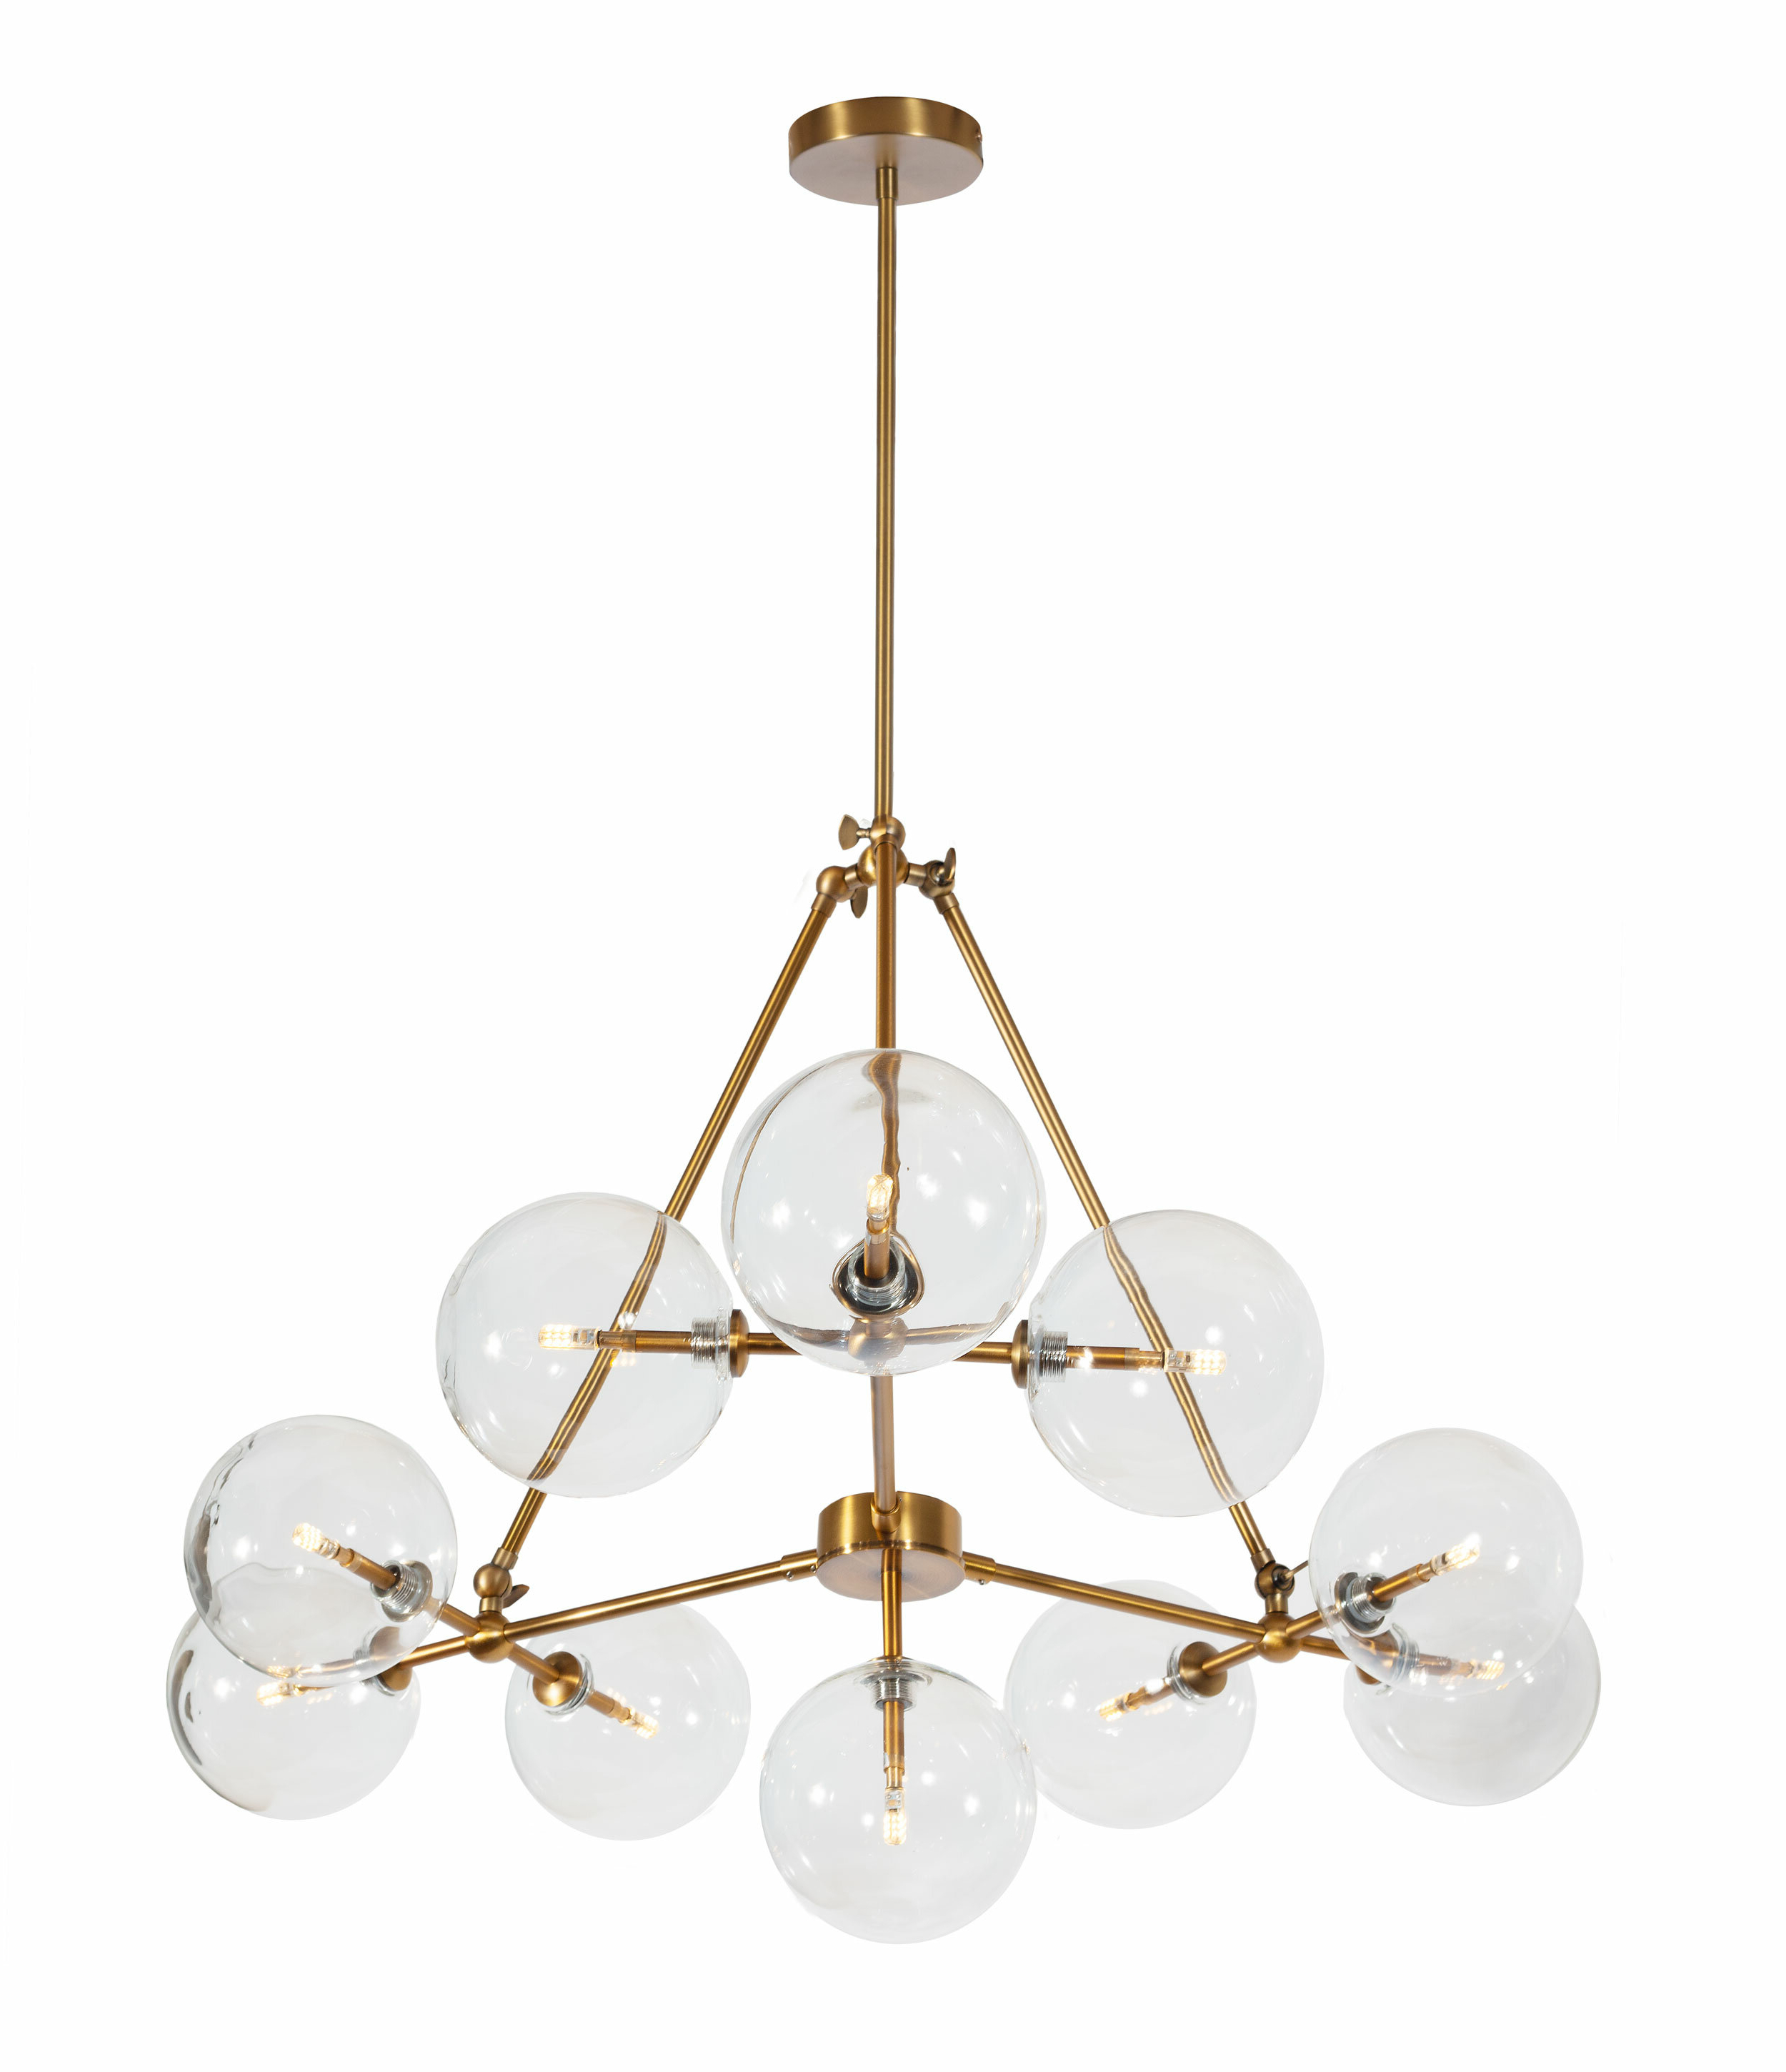 Jamie 10 Light Sputnik Chandelier With Well Liked Asher 12 Light Sputnik Chandeliers (View 12 of 20)